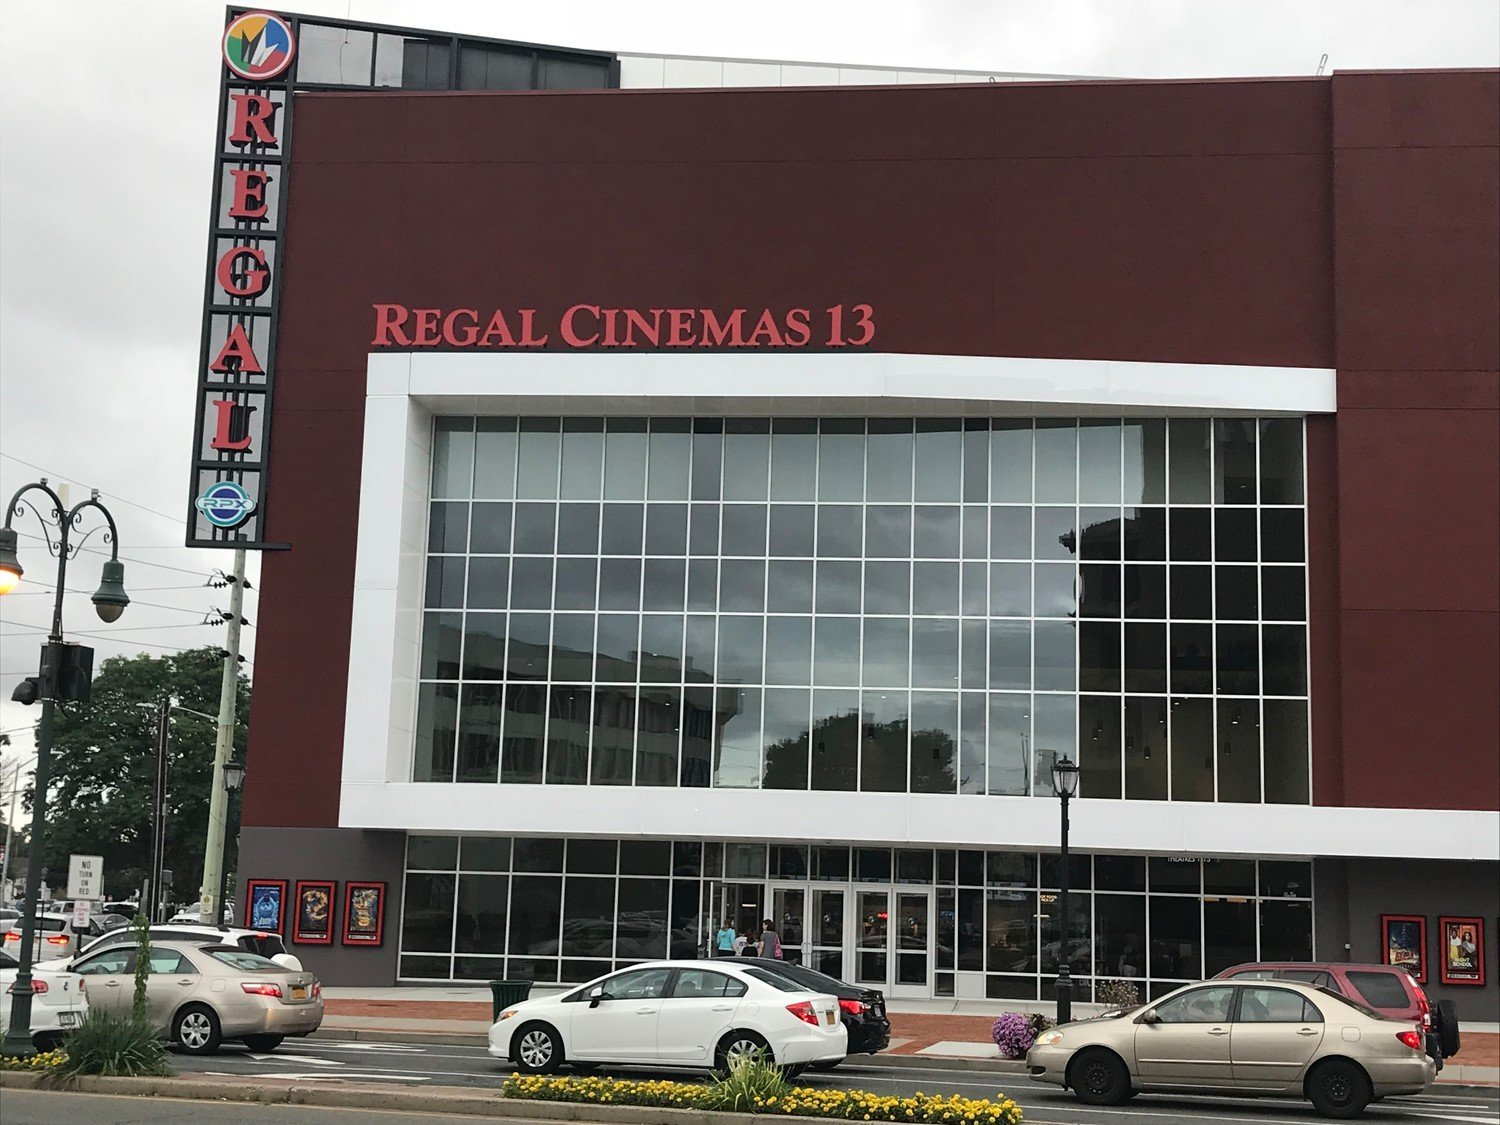 Three weeks after reopening for the first time in seven months, Regal Cinemas 13, in Lynbrook, had to close again because of an uptick in the coronavirus positivity rate.